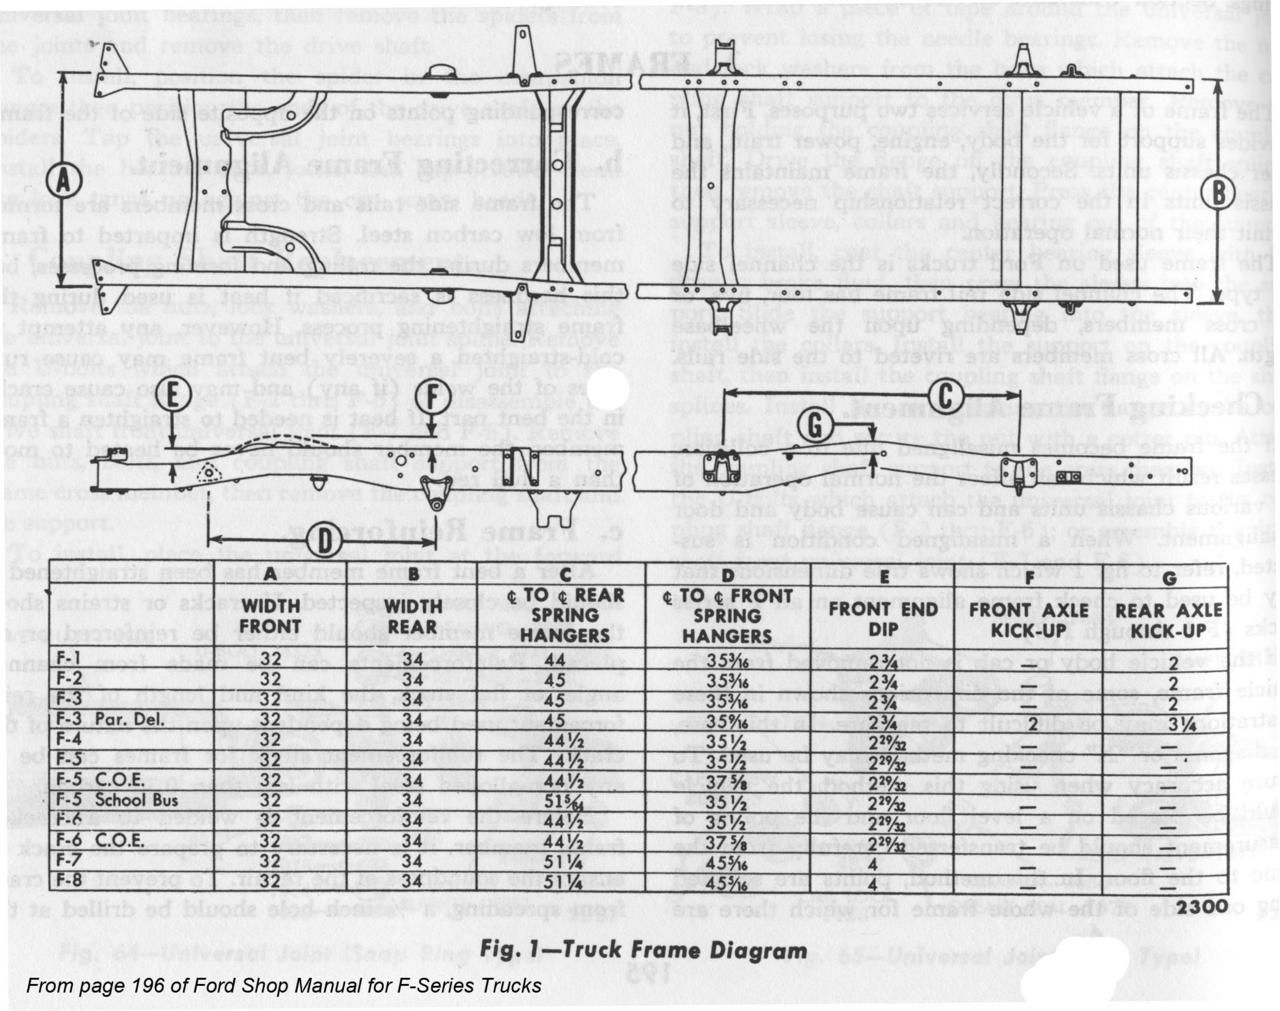 1940 Ford Truck Frame Dimensions | Framess.co